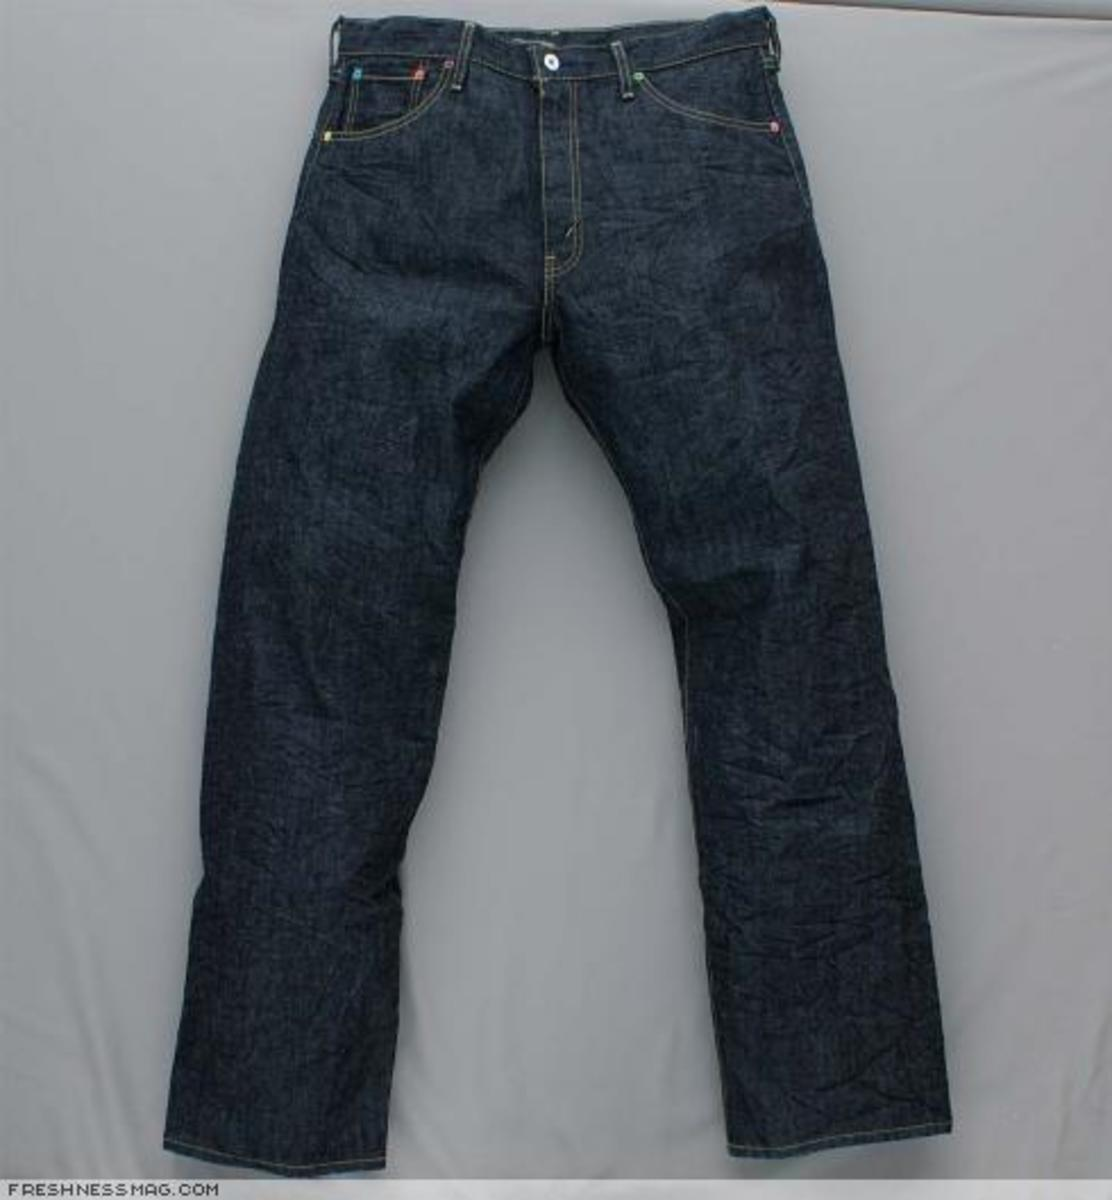 SWAGGER x Levi's 503 - 3